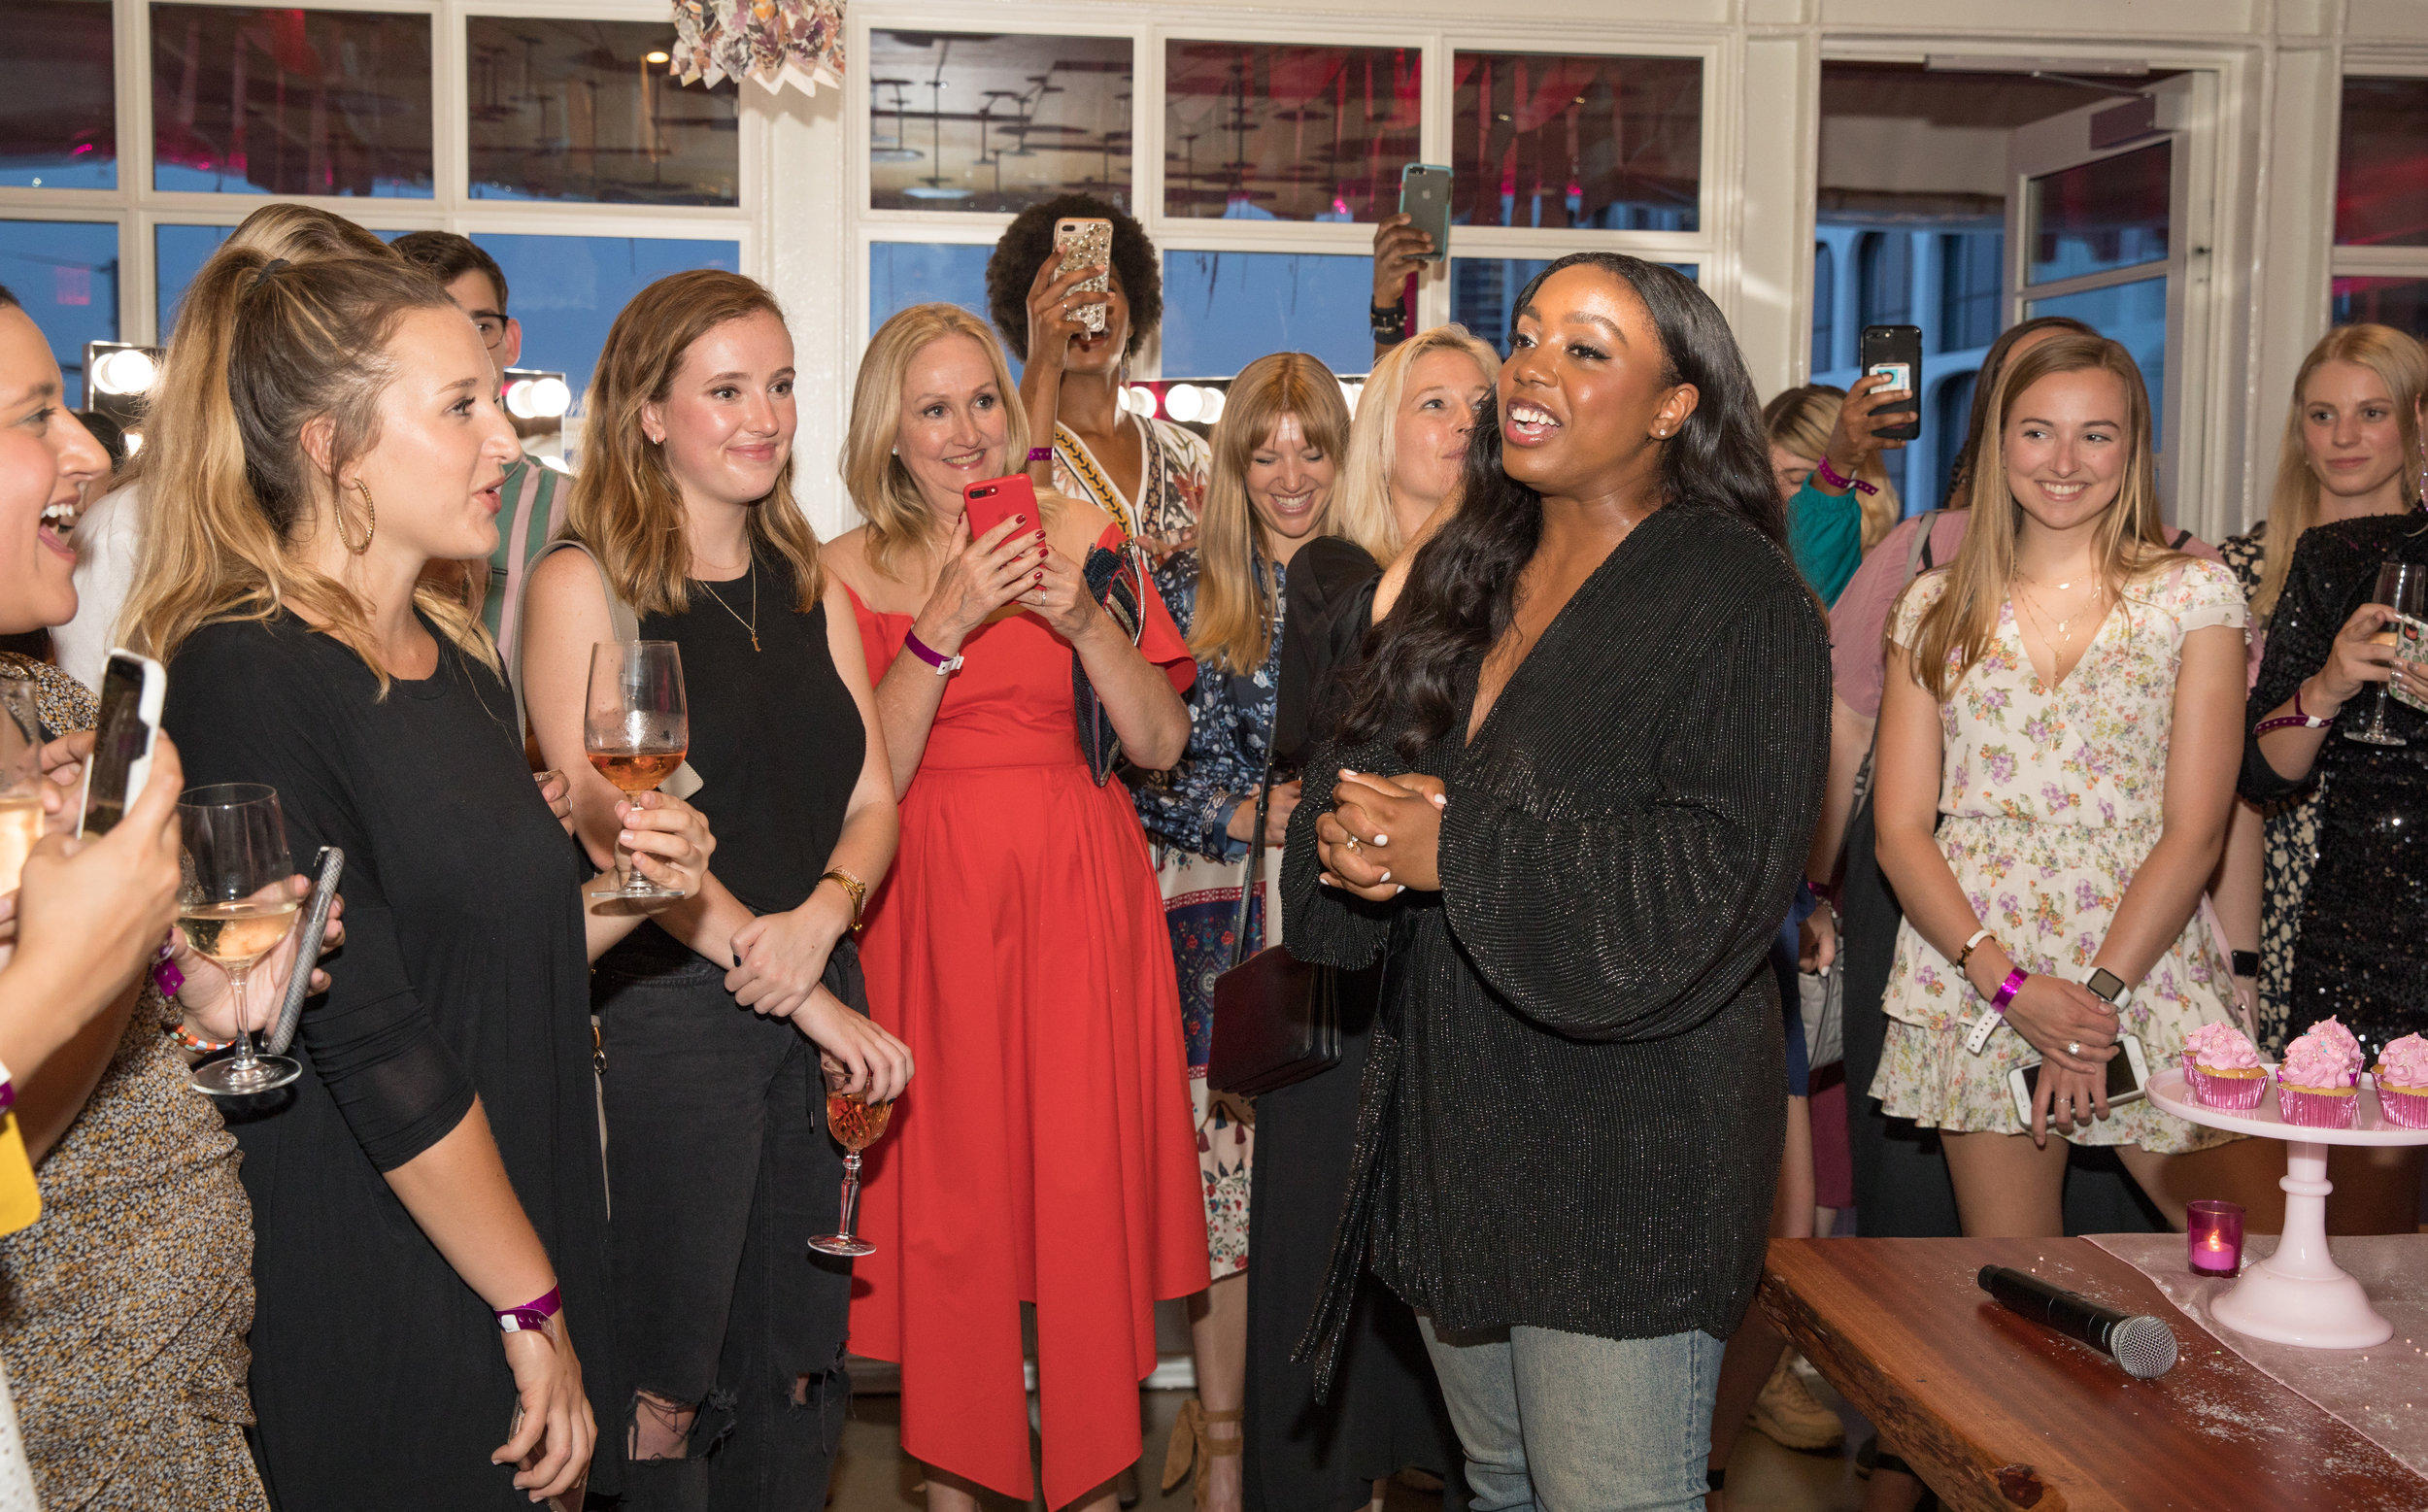 Teen Vogue  Editor-in-Chief Lindsay Peoples Wagner thanks the over 200 party guests for attending.